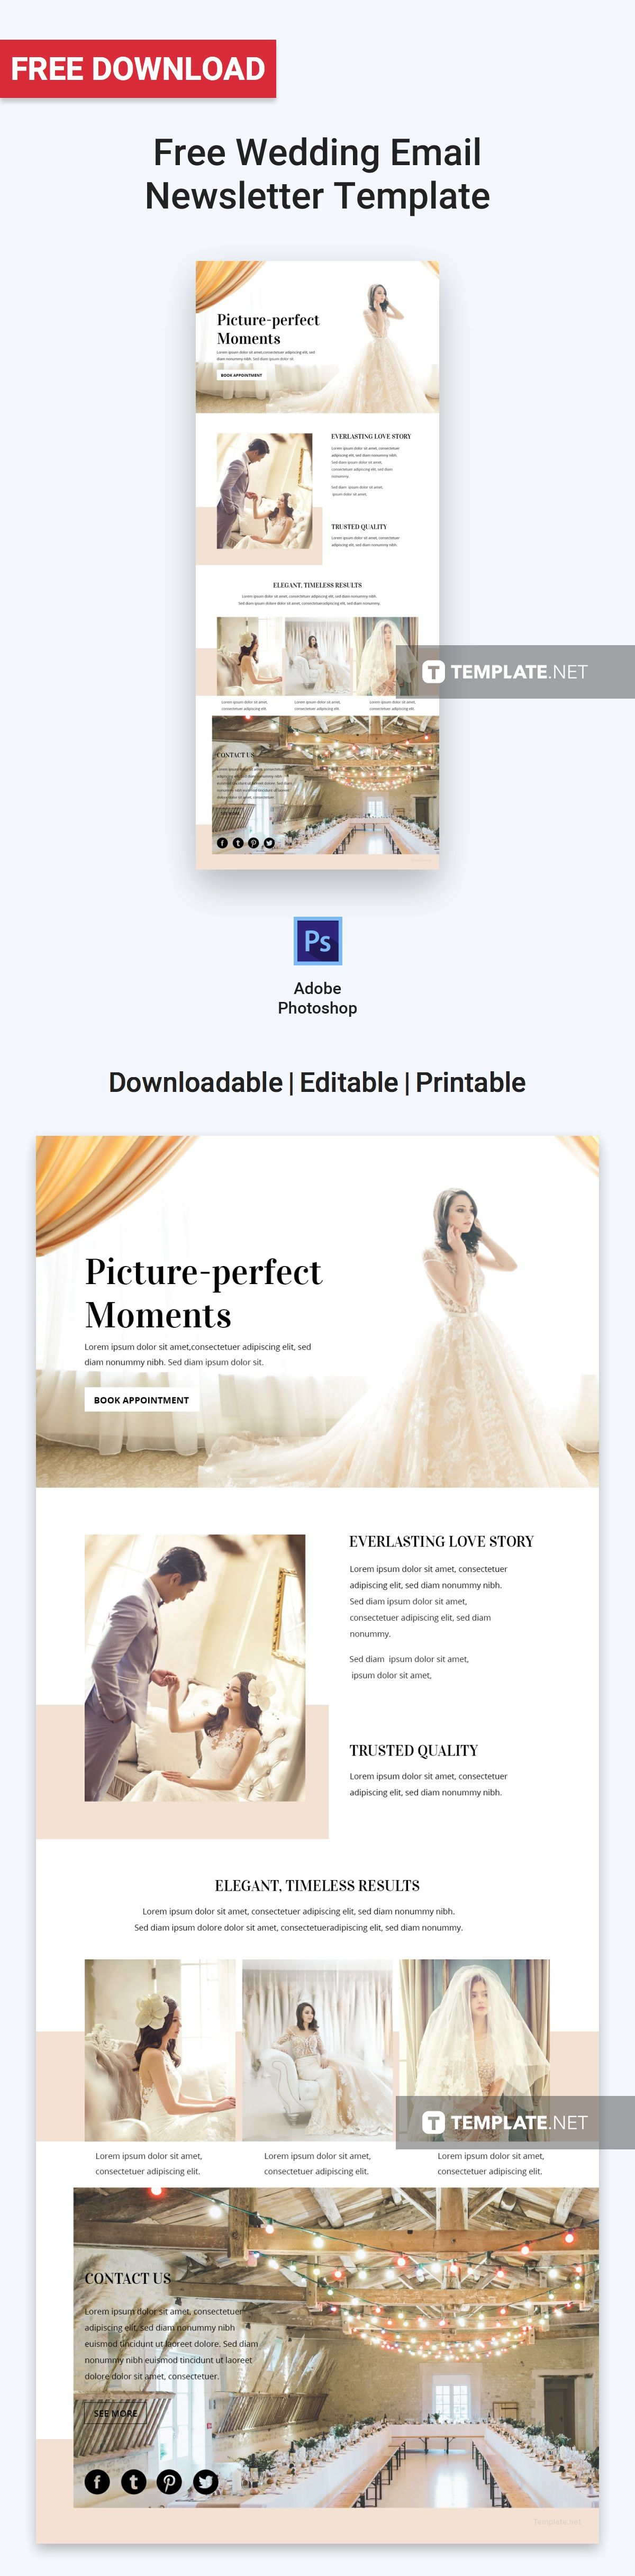 Free Wedding Email Newsletter Email Newsletters Templates